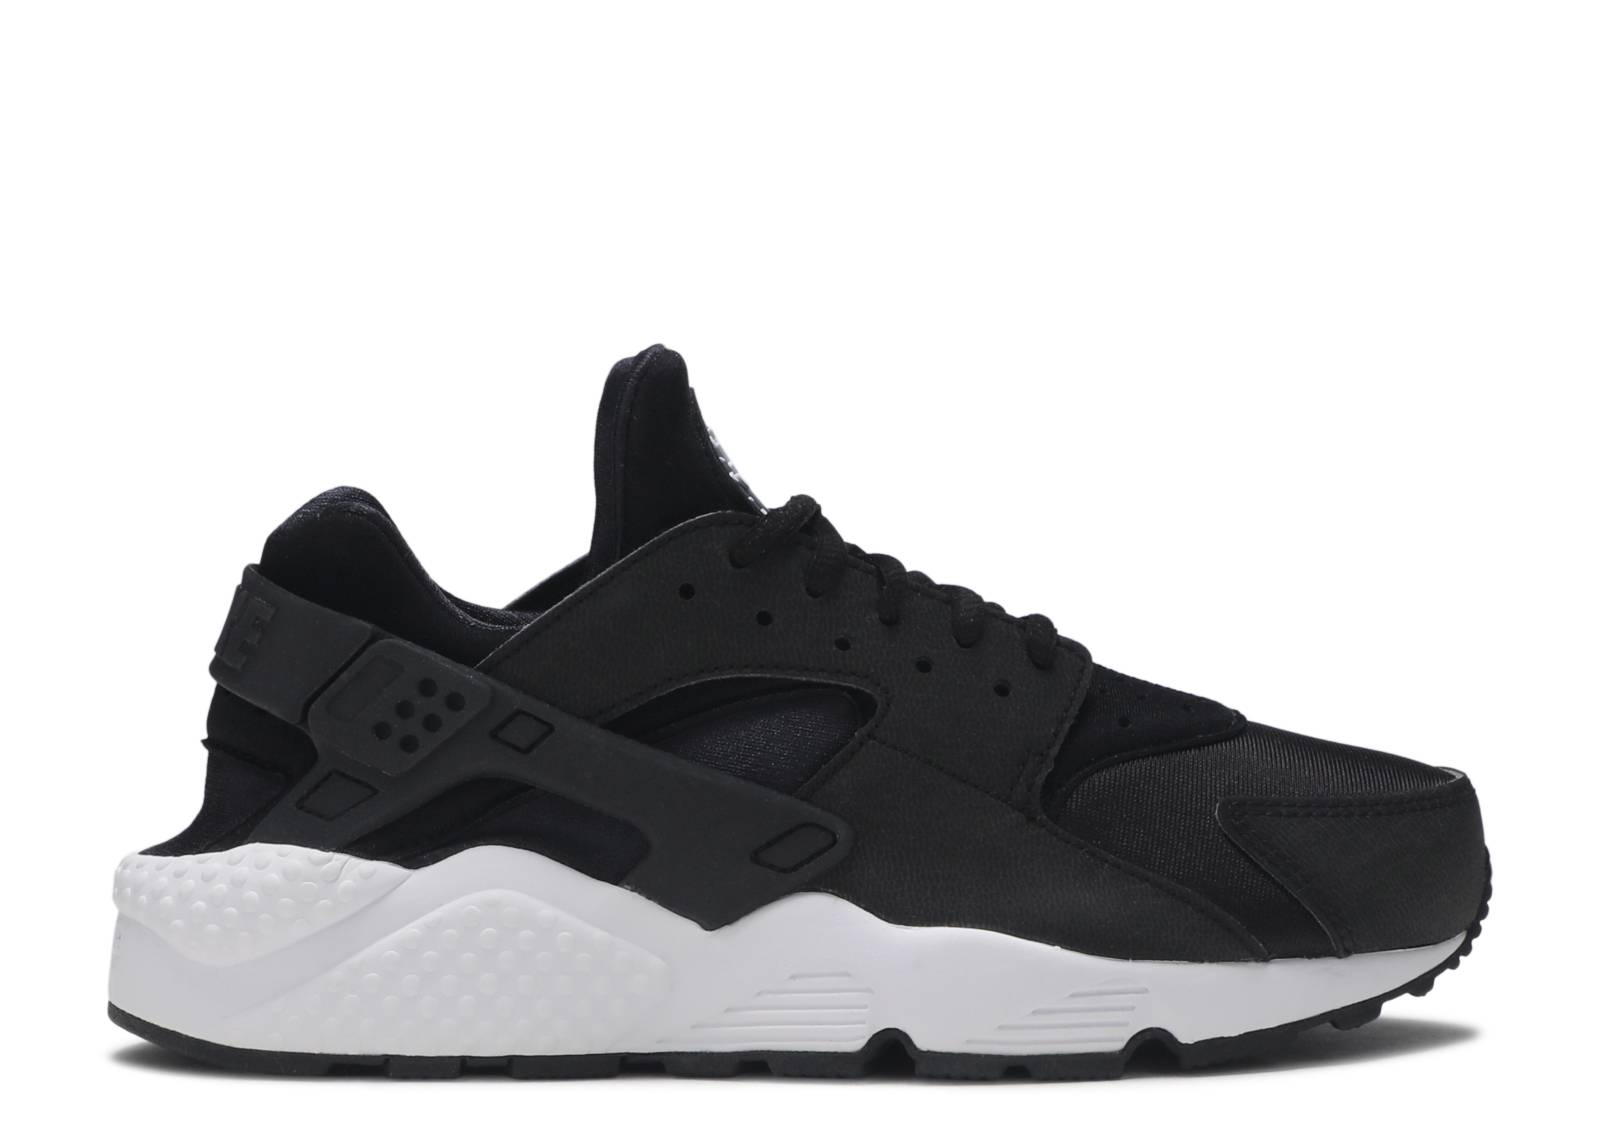 d16d252345fa3 Nike Huaraches Shoes for Women   Men